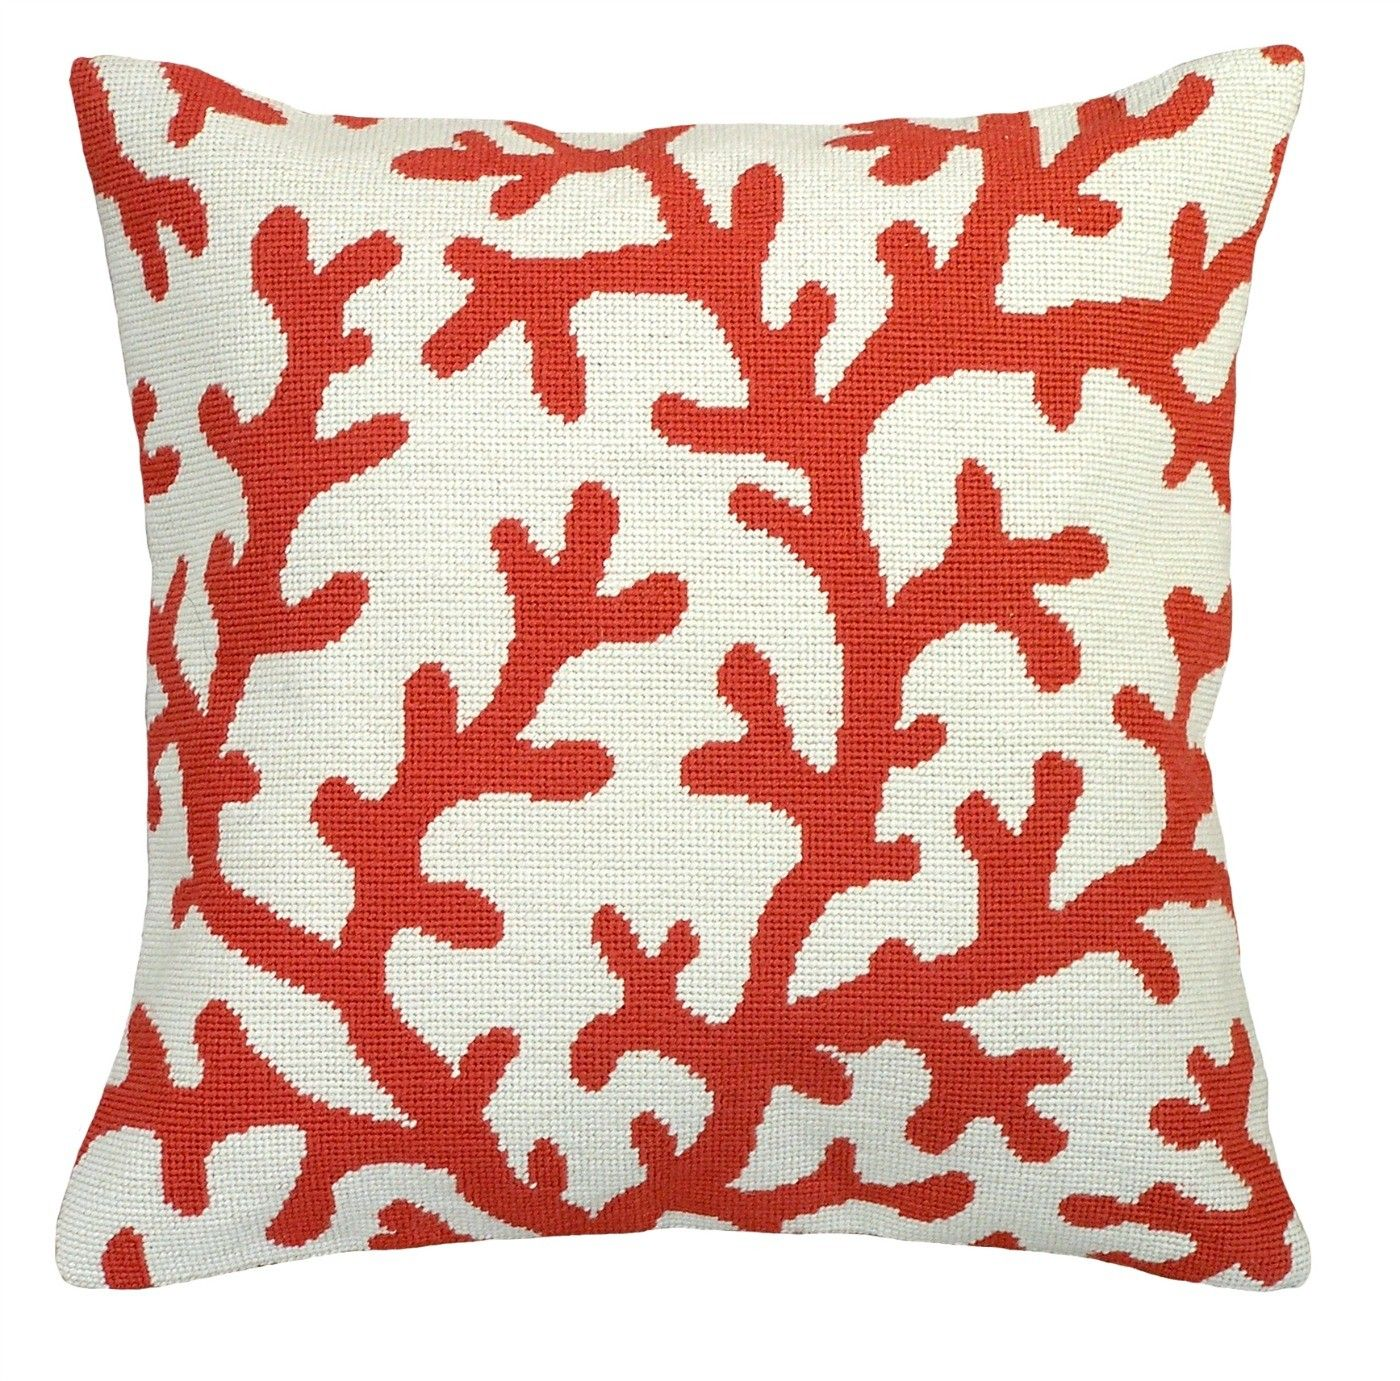 osra coral pillow il cover zoom solid pillows decorative fullxfull listing throw